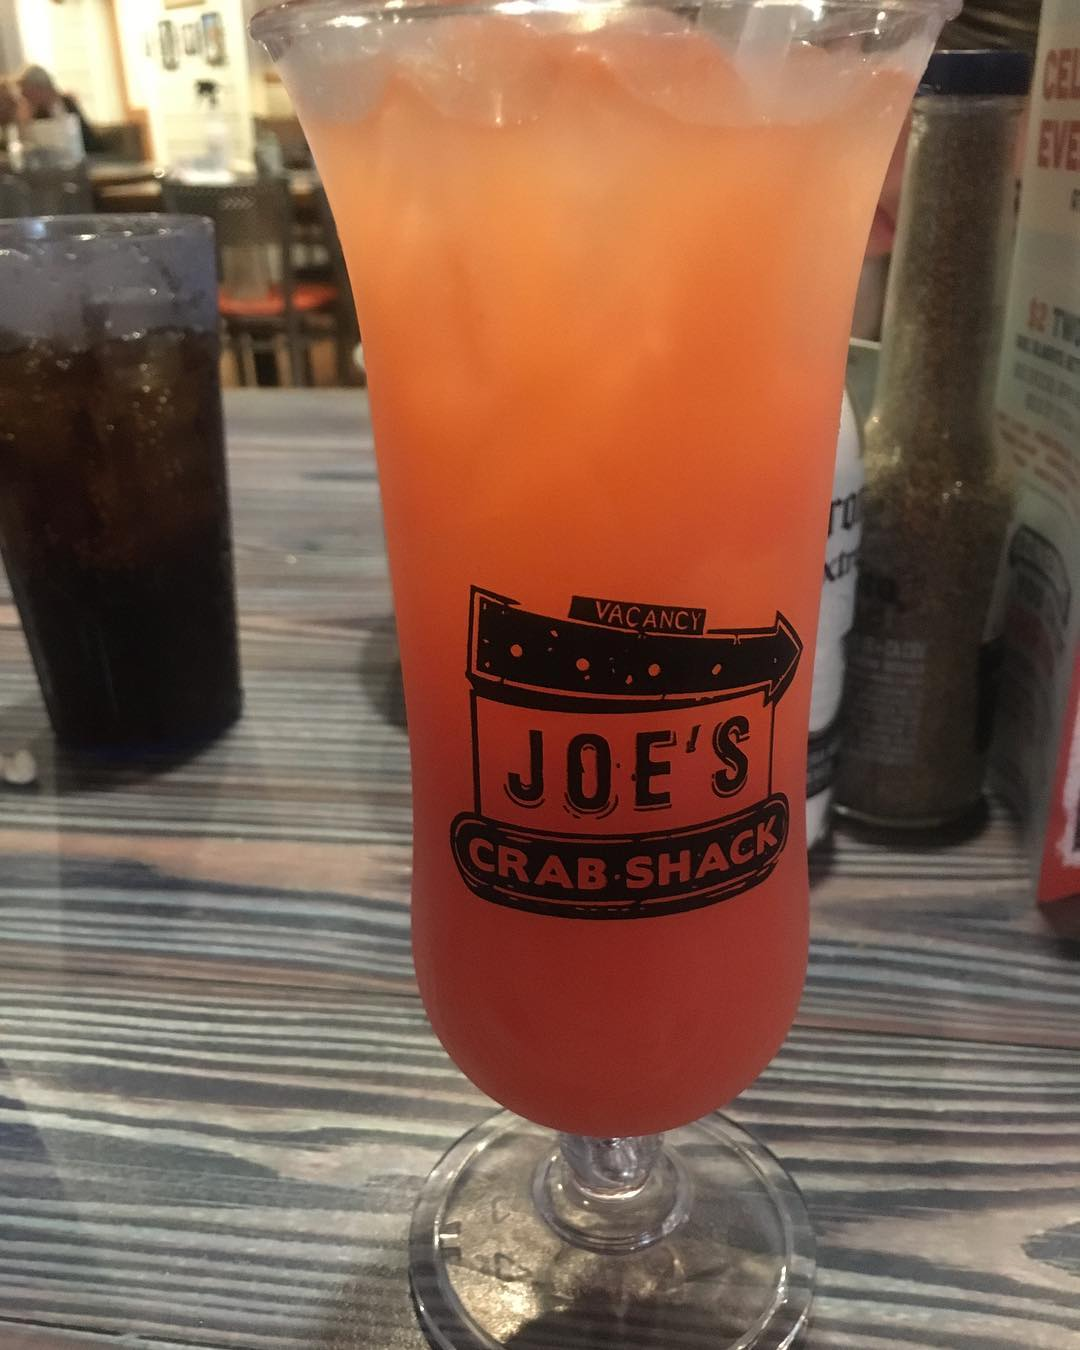 Sevierville Restaurants - Joe's Crab Shack - Original Photo